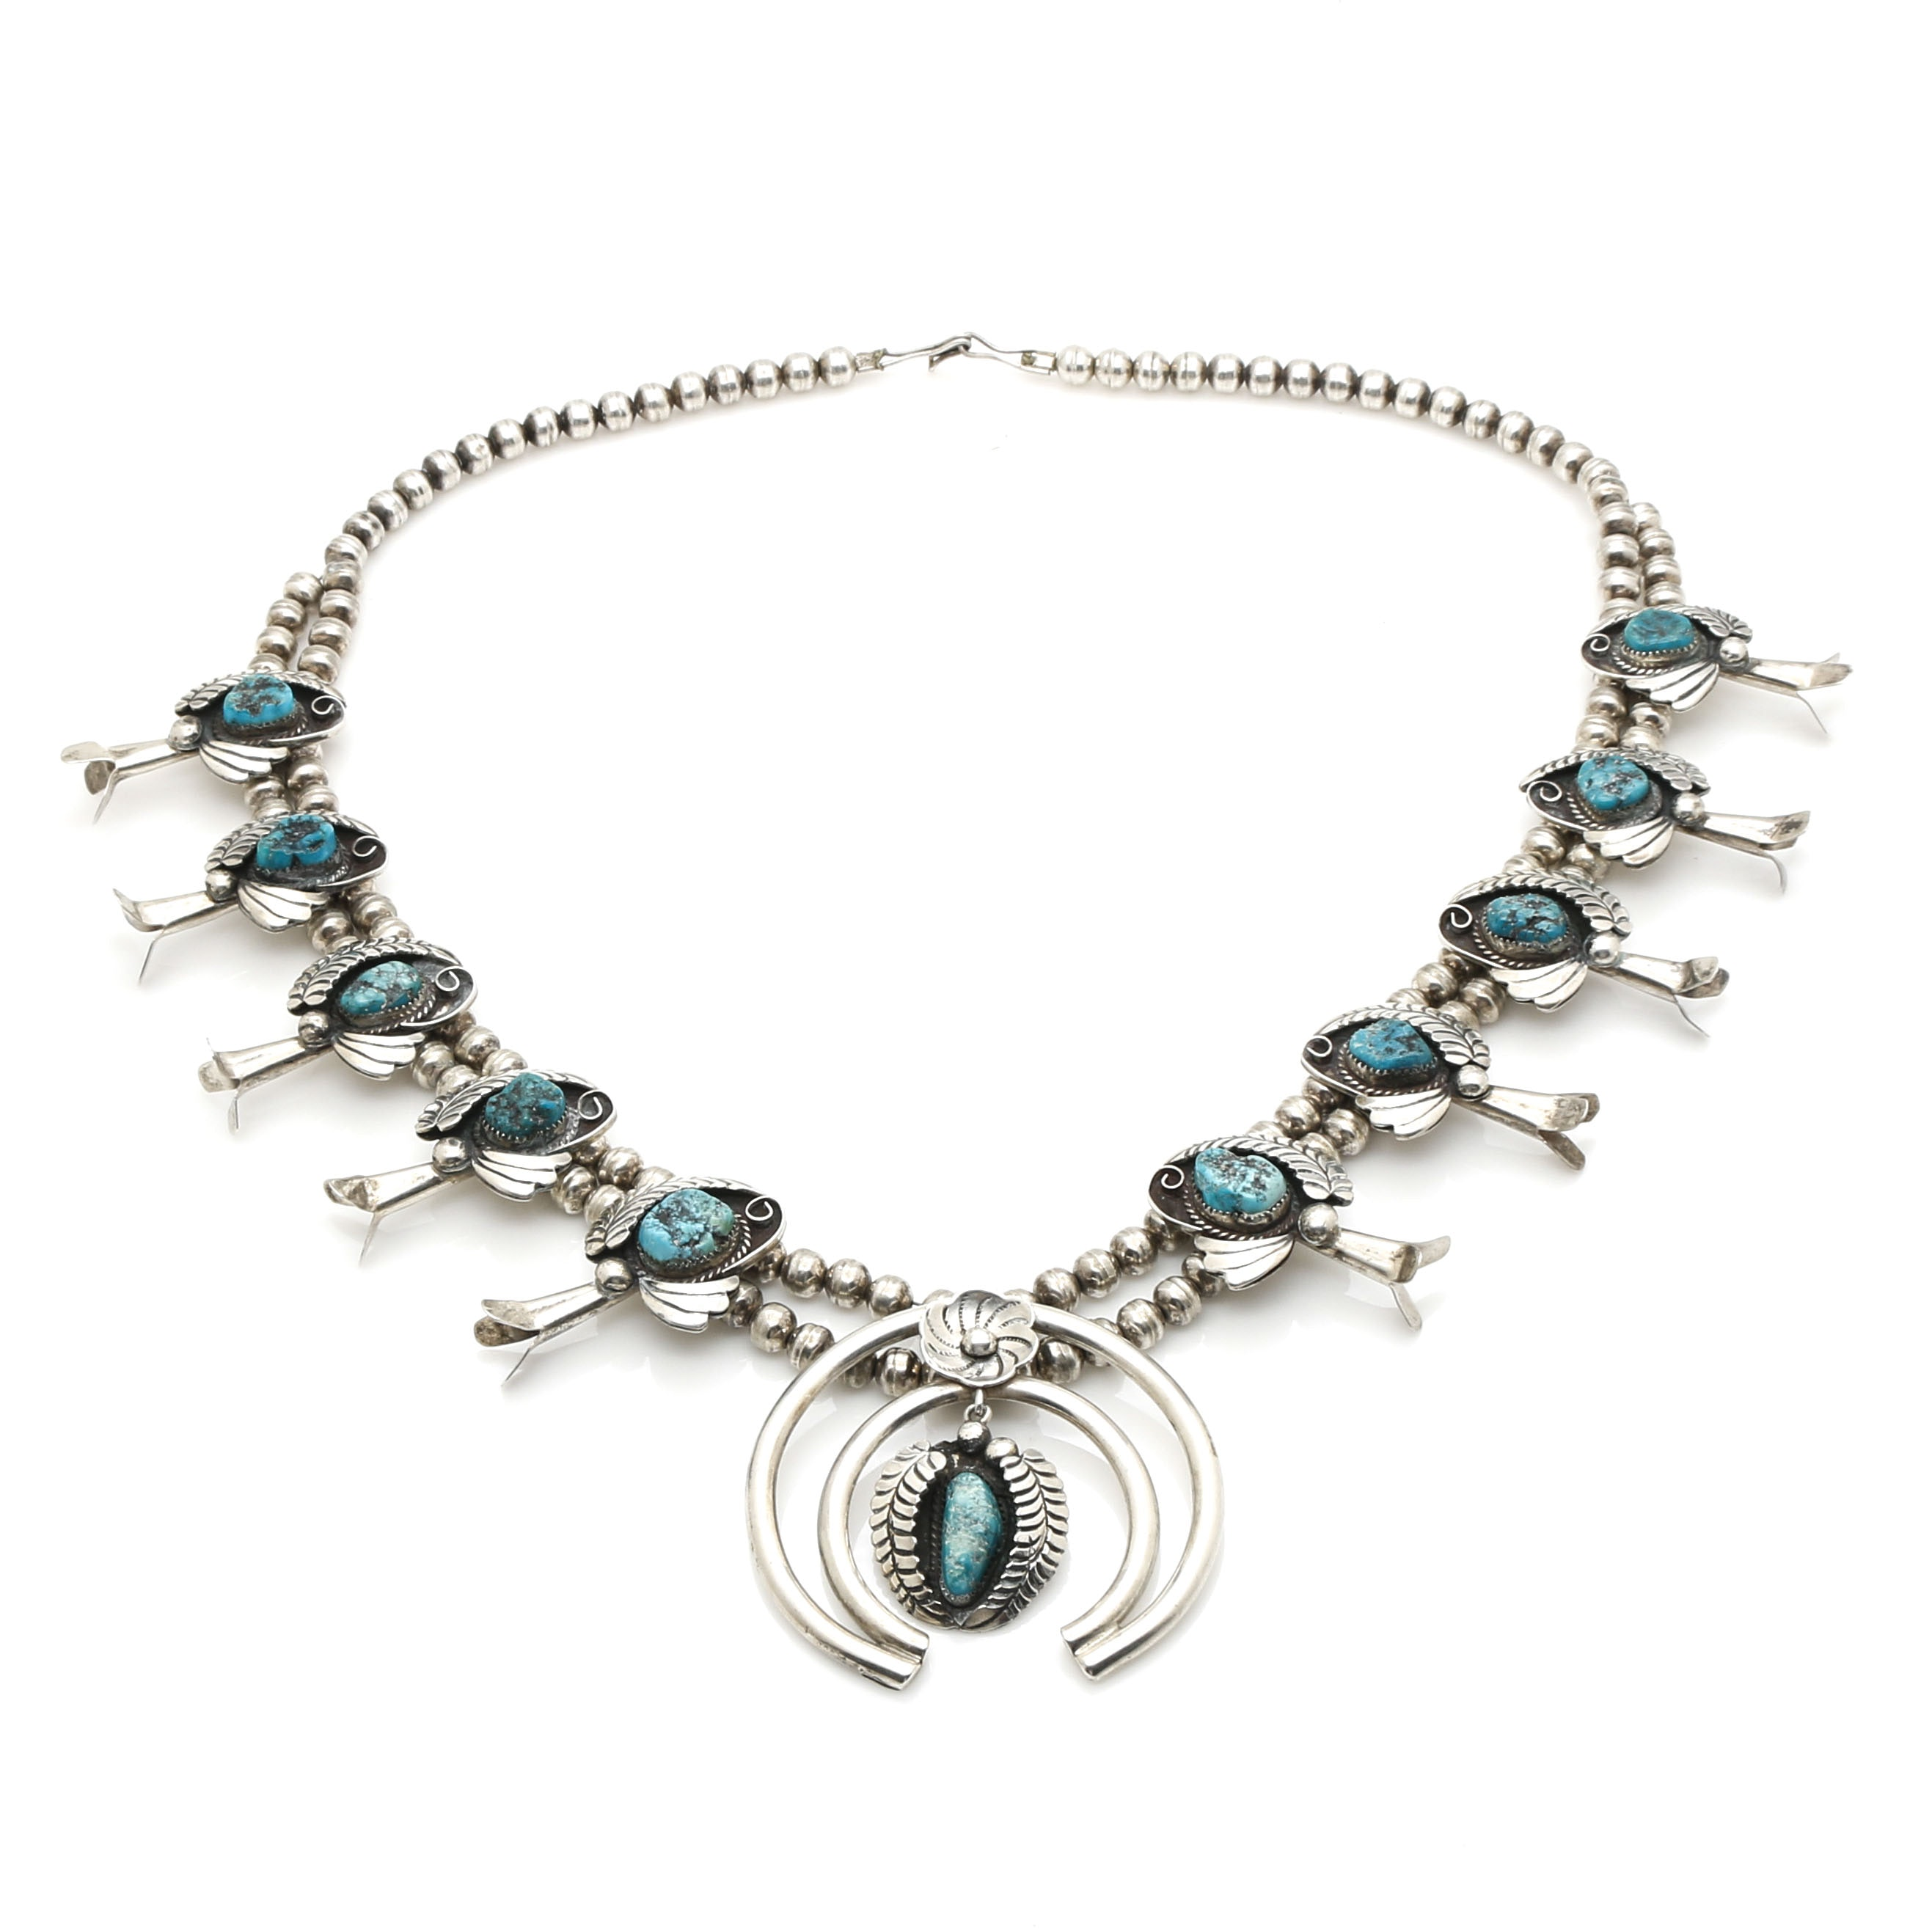 John G. Begay Sterling Silver Turquoise Squash Blossom Naja Necklace